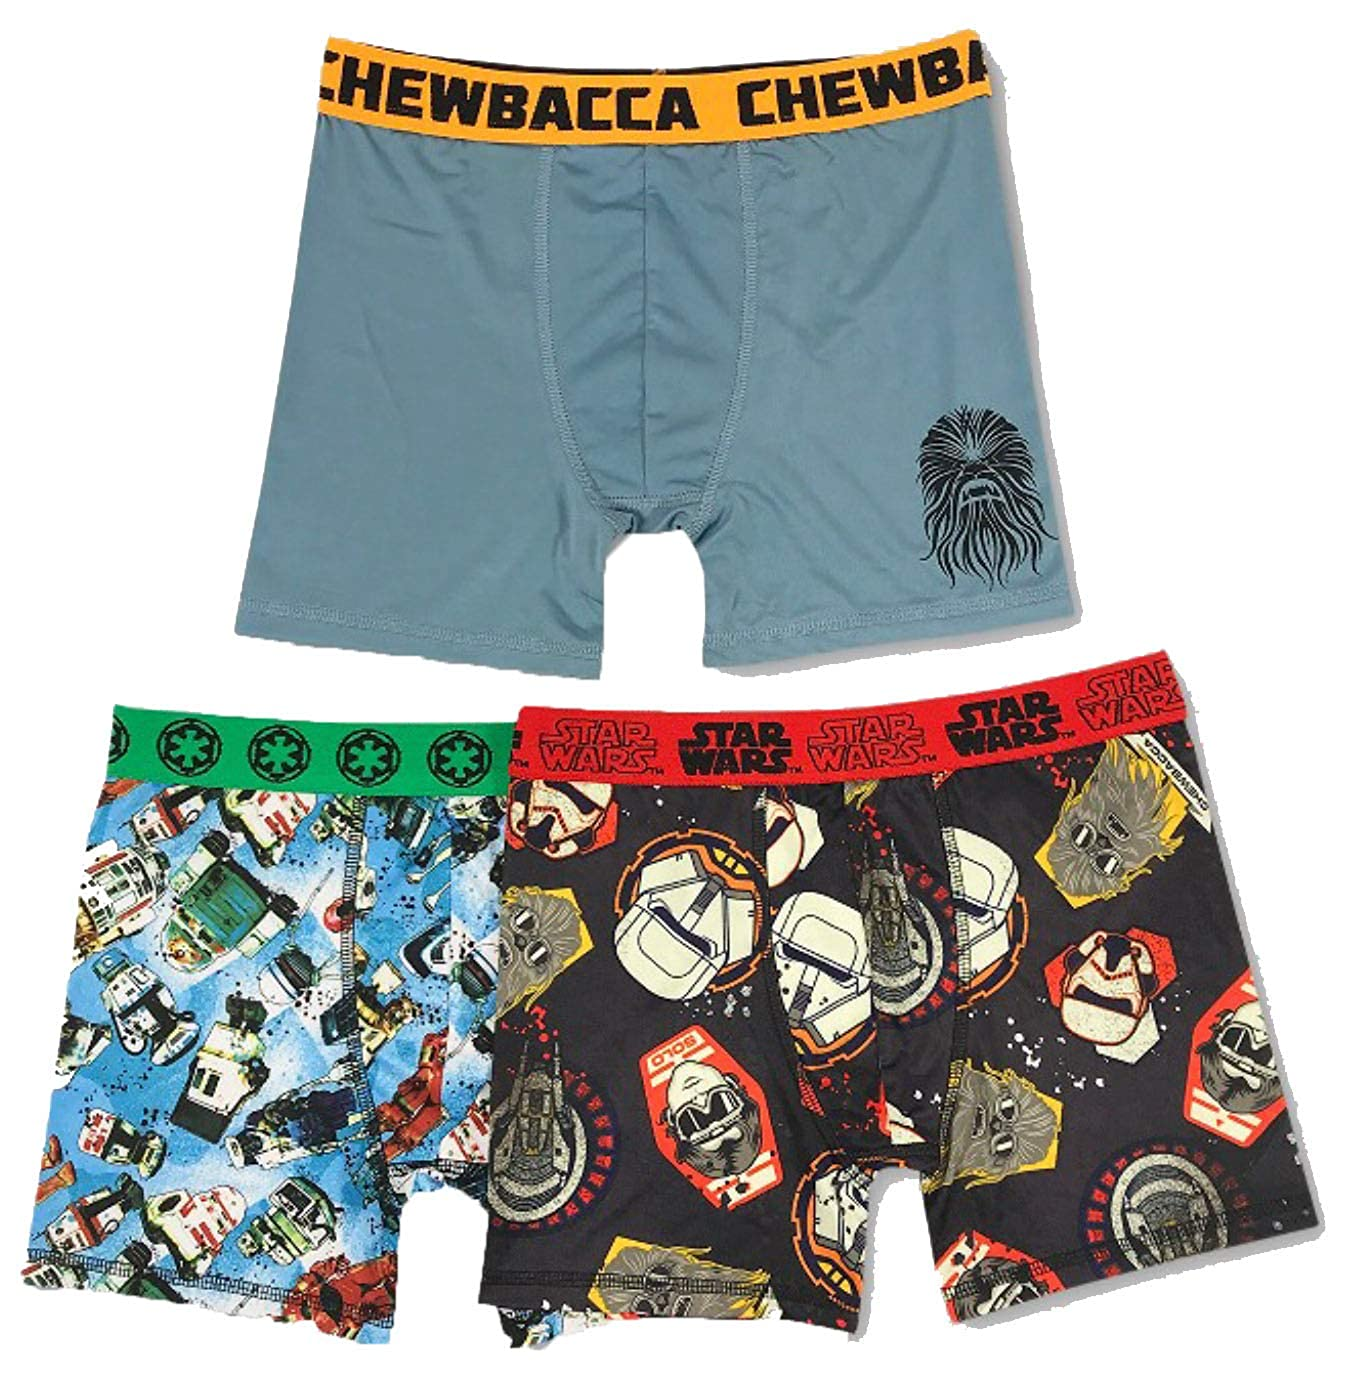 Handcraft Boys Star Wars Han Solo 3pk Athletic Boxer Briefs Underwear